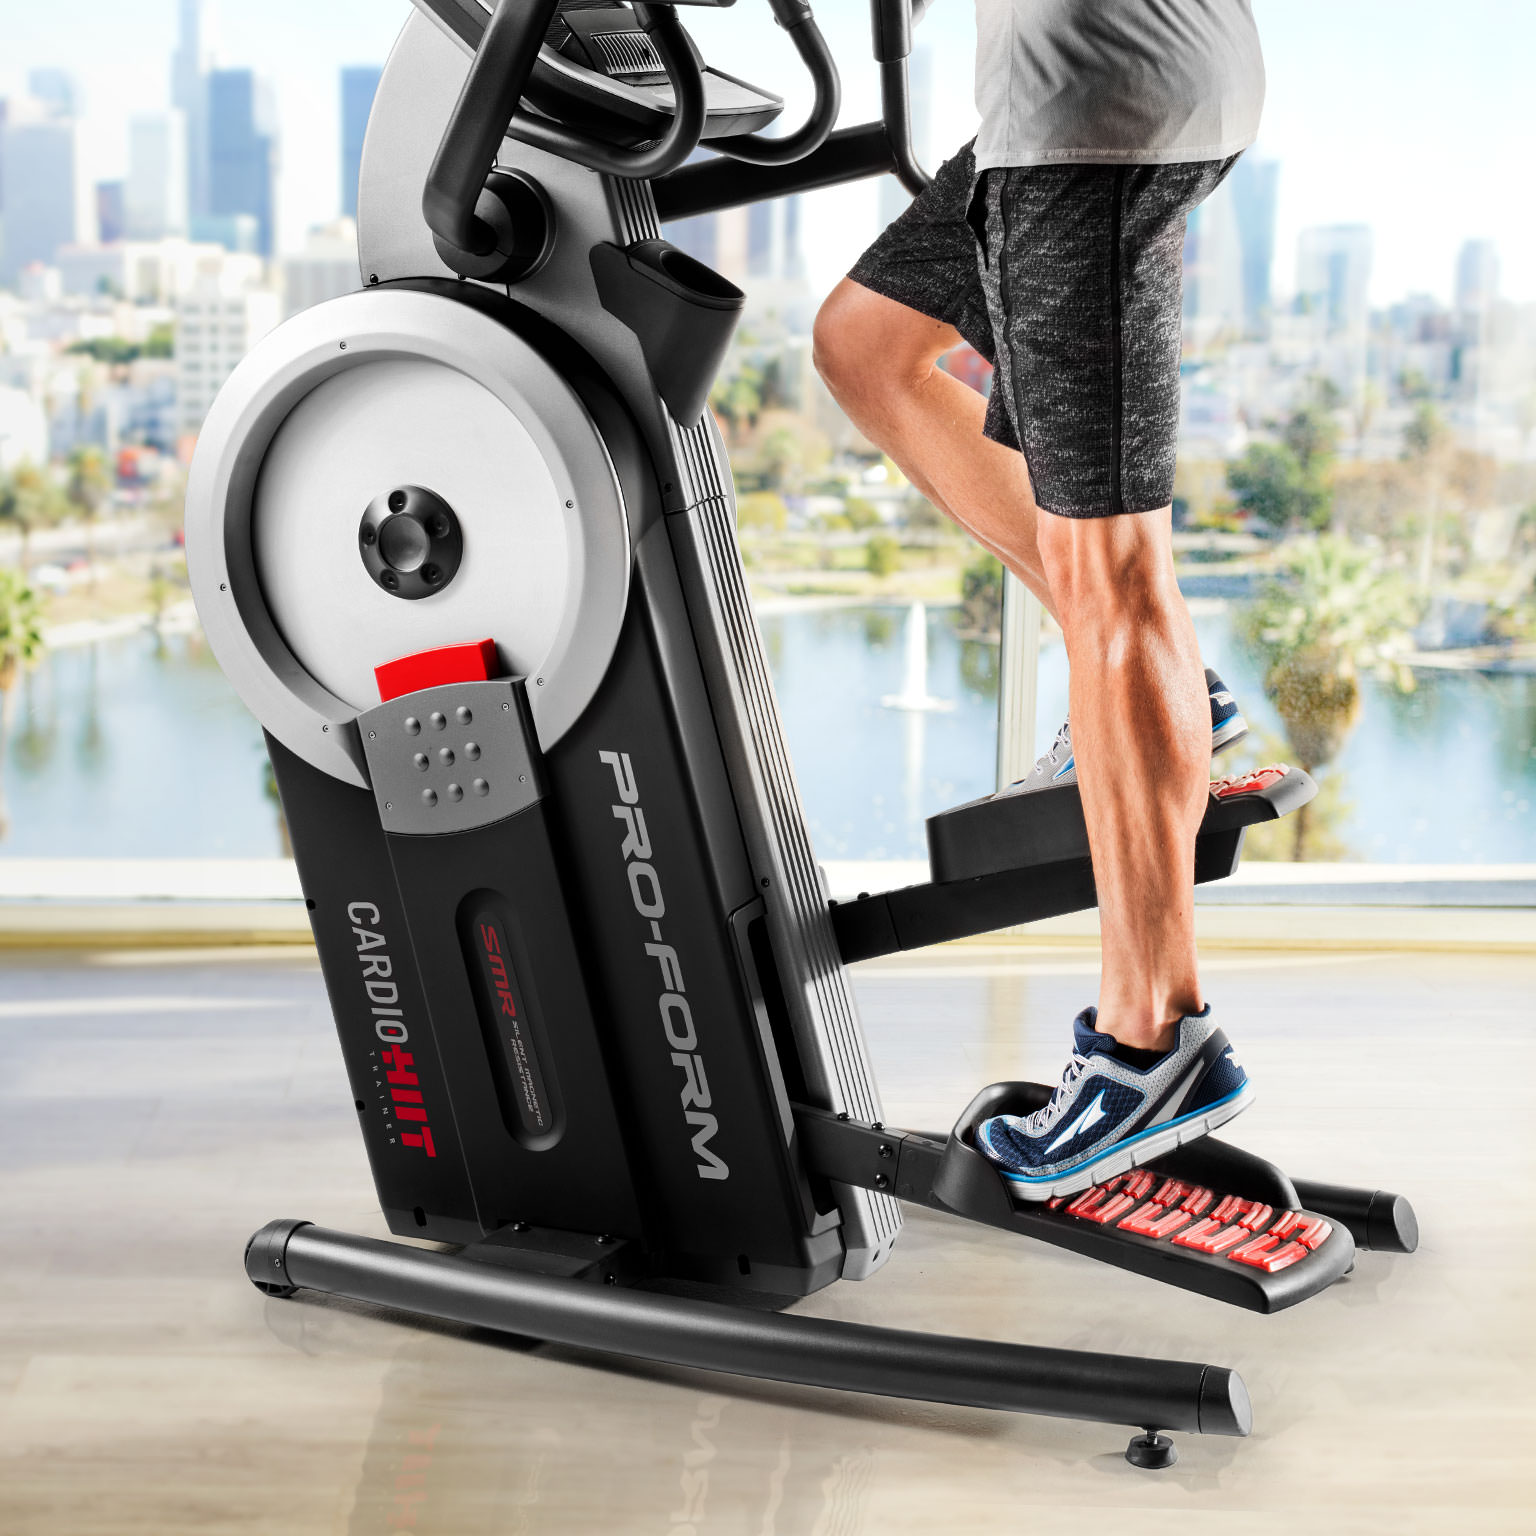 Smart Hiit Cardio Trainer Elliptical Stepper Proform Ground Off The Leg Of 12 Volt Pull Form Batteries In Series Burn More Calories Less Time With